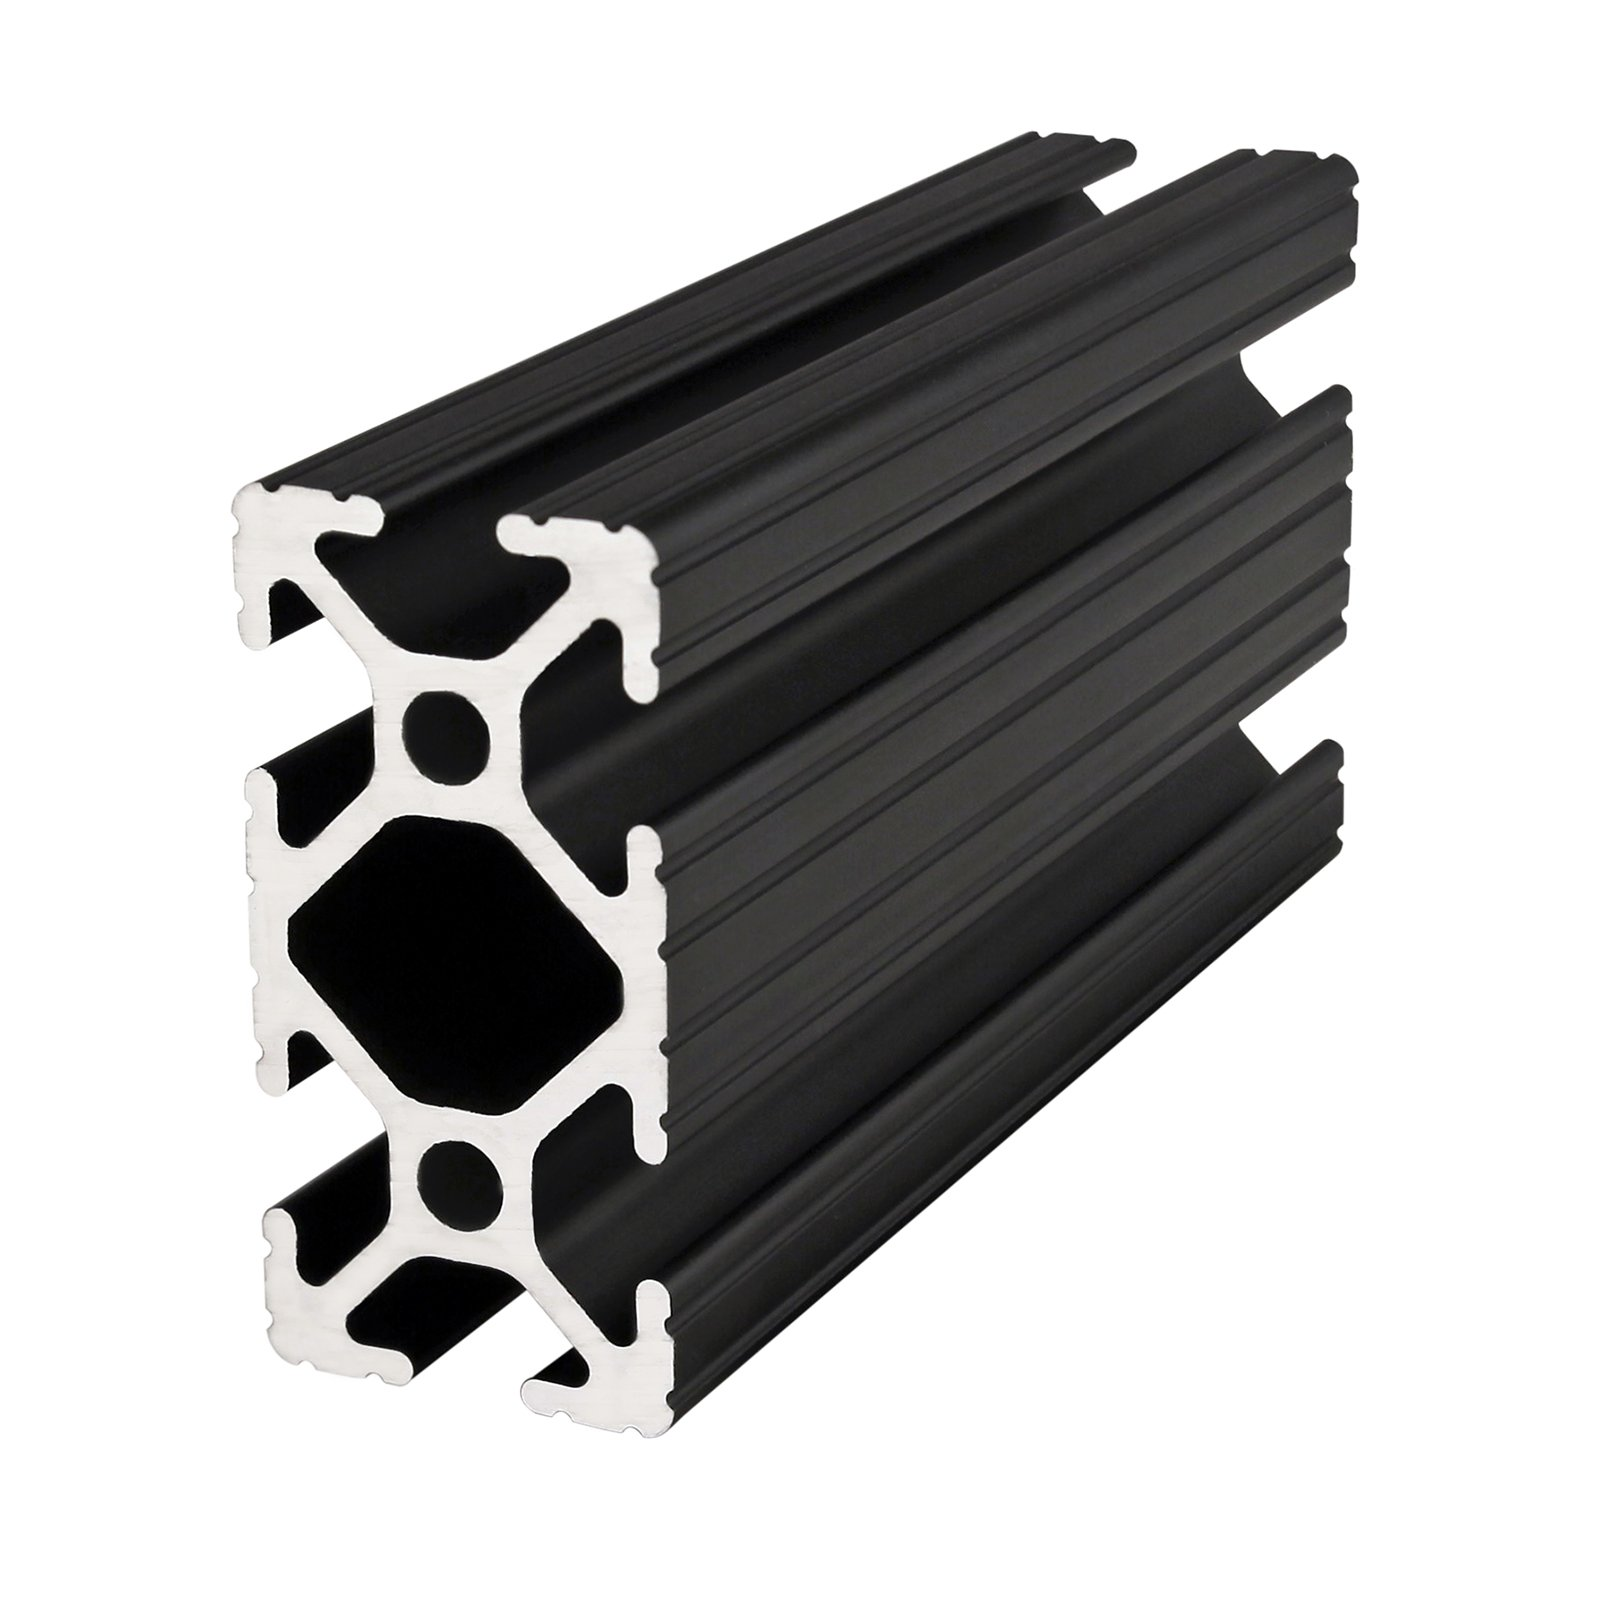 80/20 Inc., 1020, 10 Series, 1'' x 2'' T-Slotted Extrusion x 24'' Black